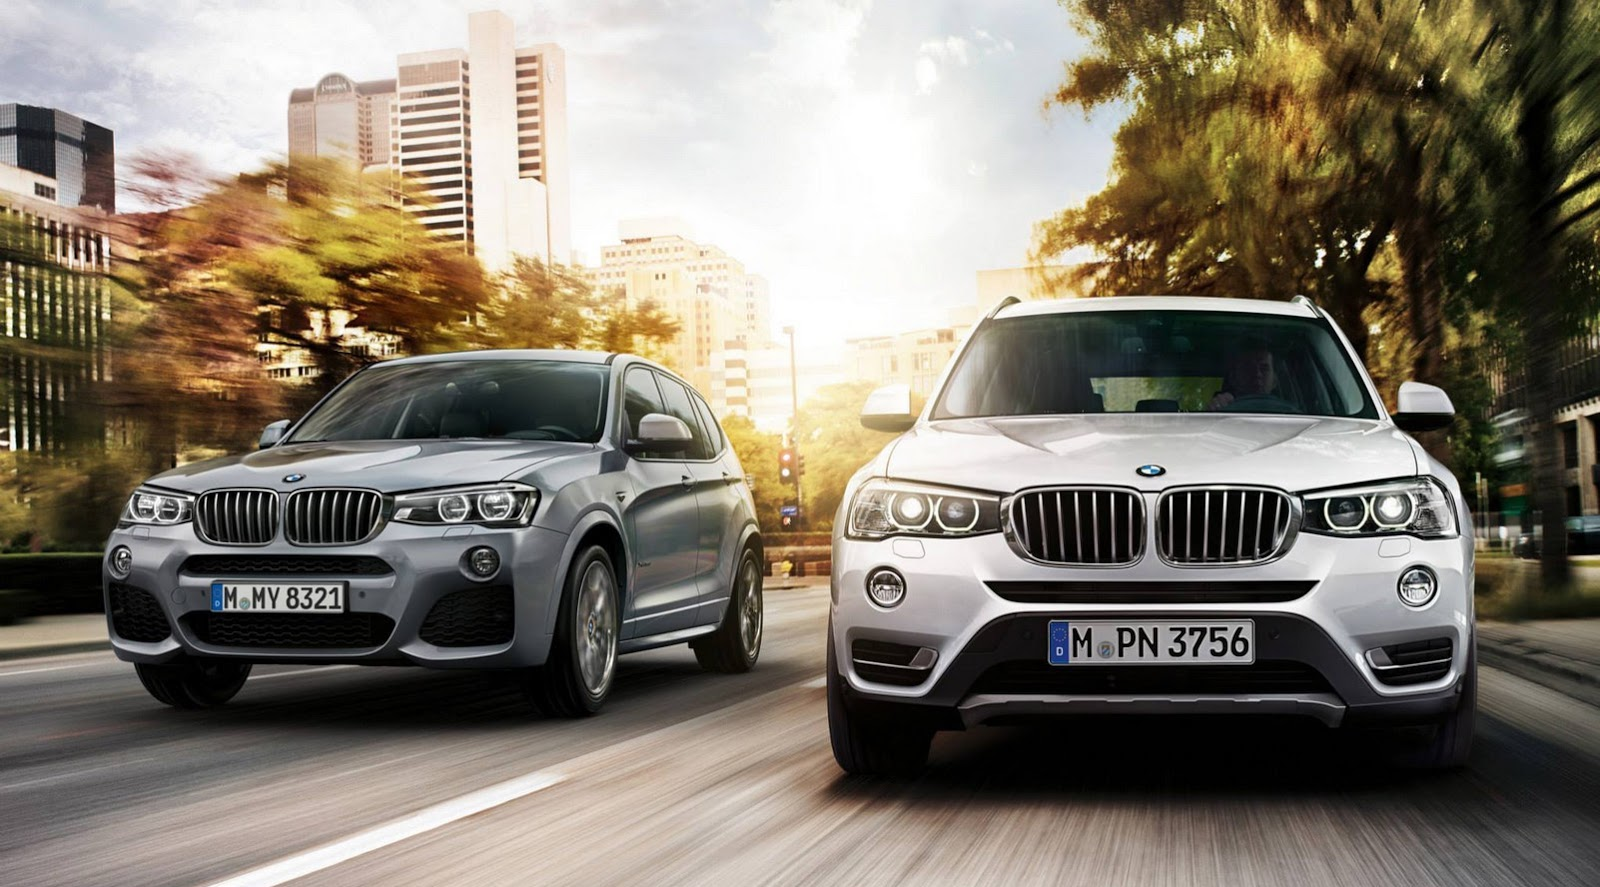 2014 bmw x3 m sport lci first shot of kitted up f25. Black Bedroom Furniture Sets. Home Design Ideas